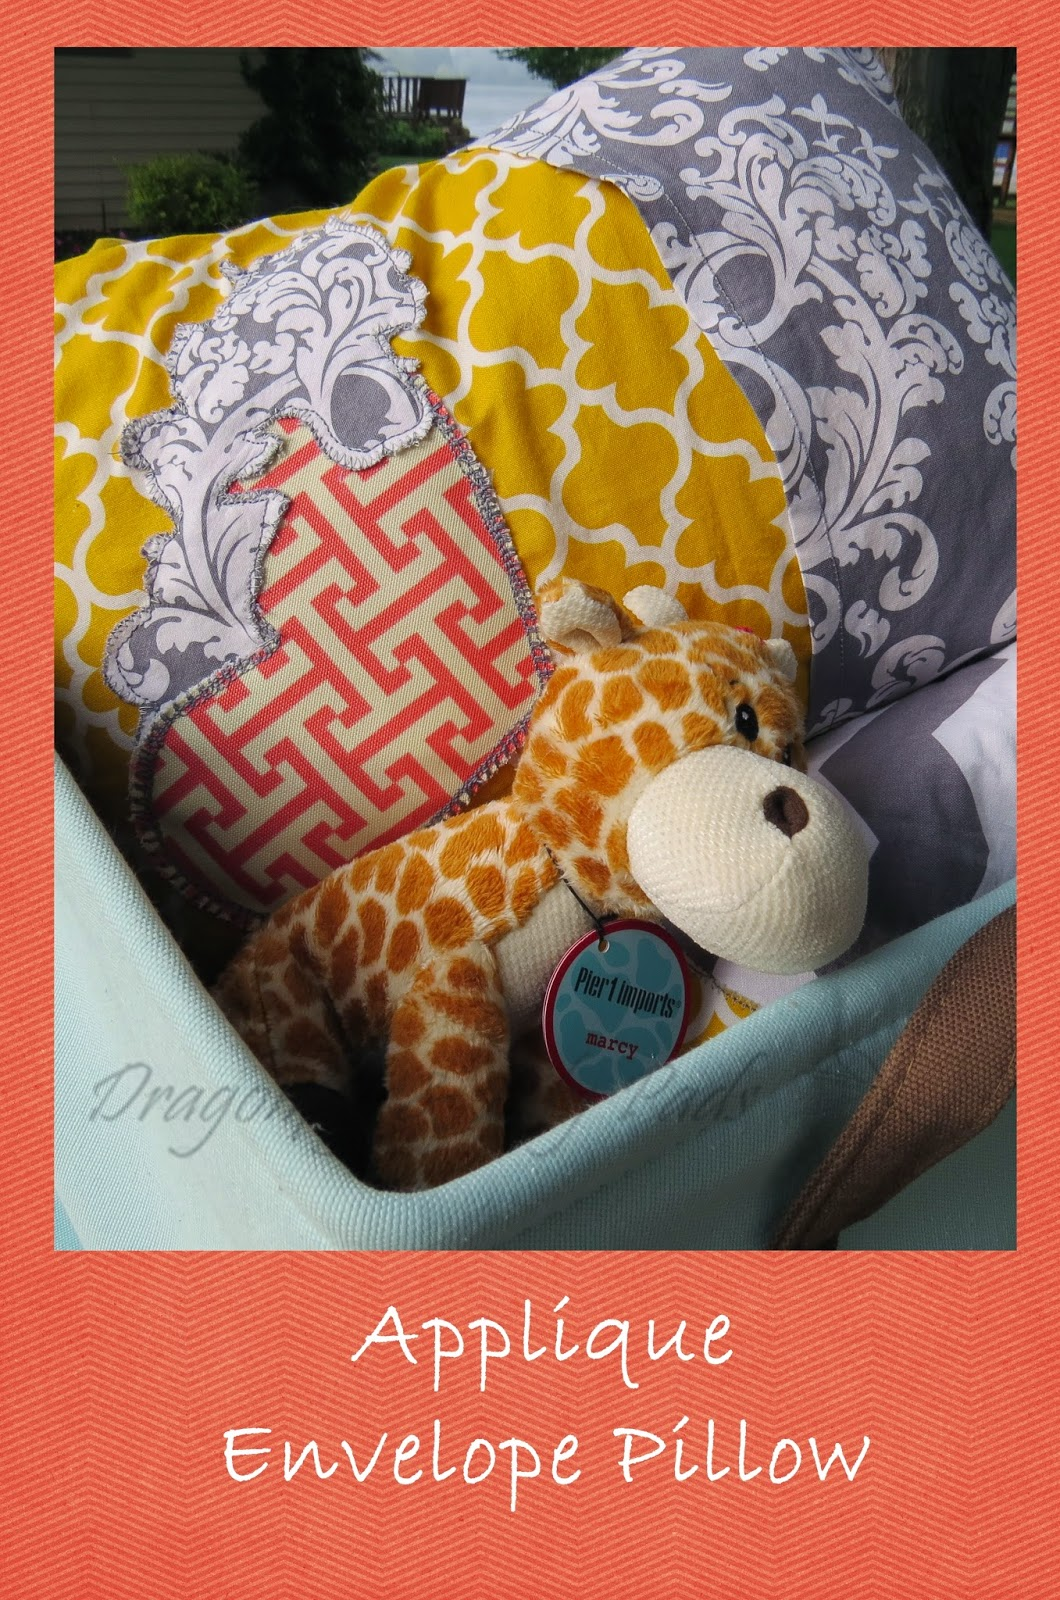 Travel pillow, Heart, Envelope pillow case, Blue Storage basket, Fabric, Stuffed Giraffe, Applique, Yellow, White, Gray, Coral, Quilt, Gift basket